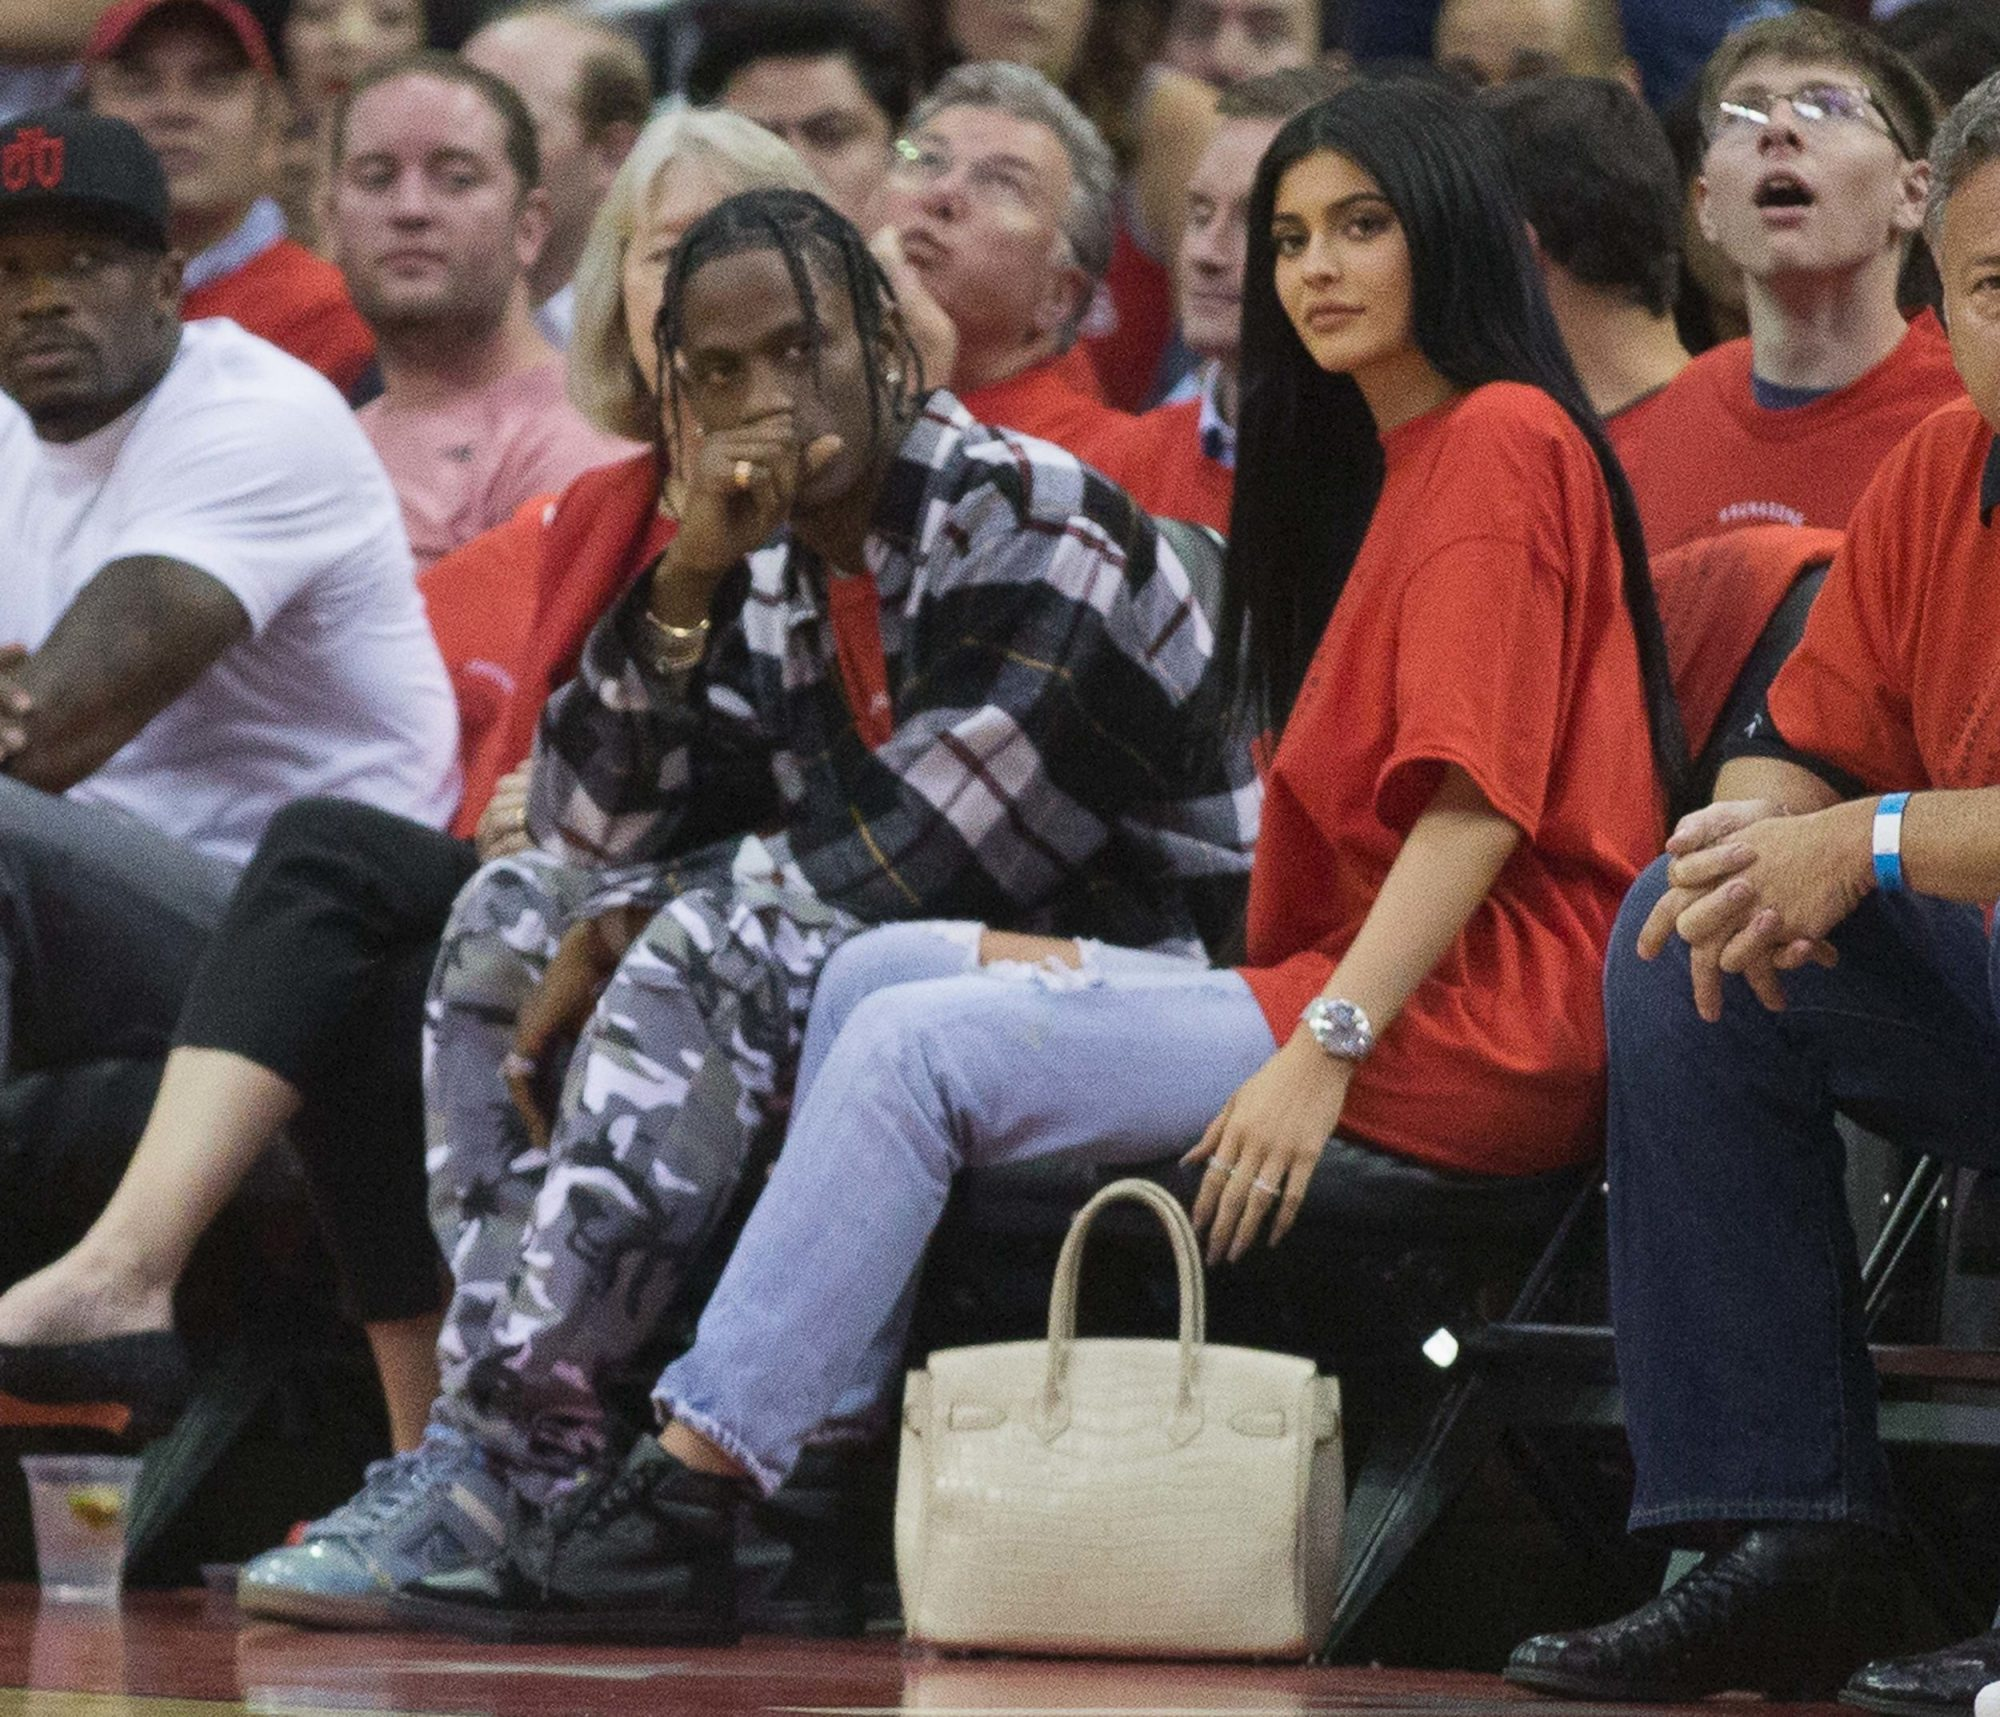 Photo of Kylie Jenner and Travis Scott at a 2017 NBA Playoff Game